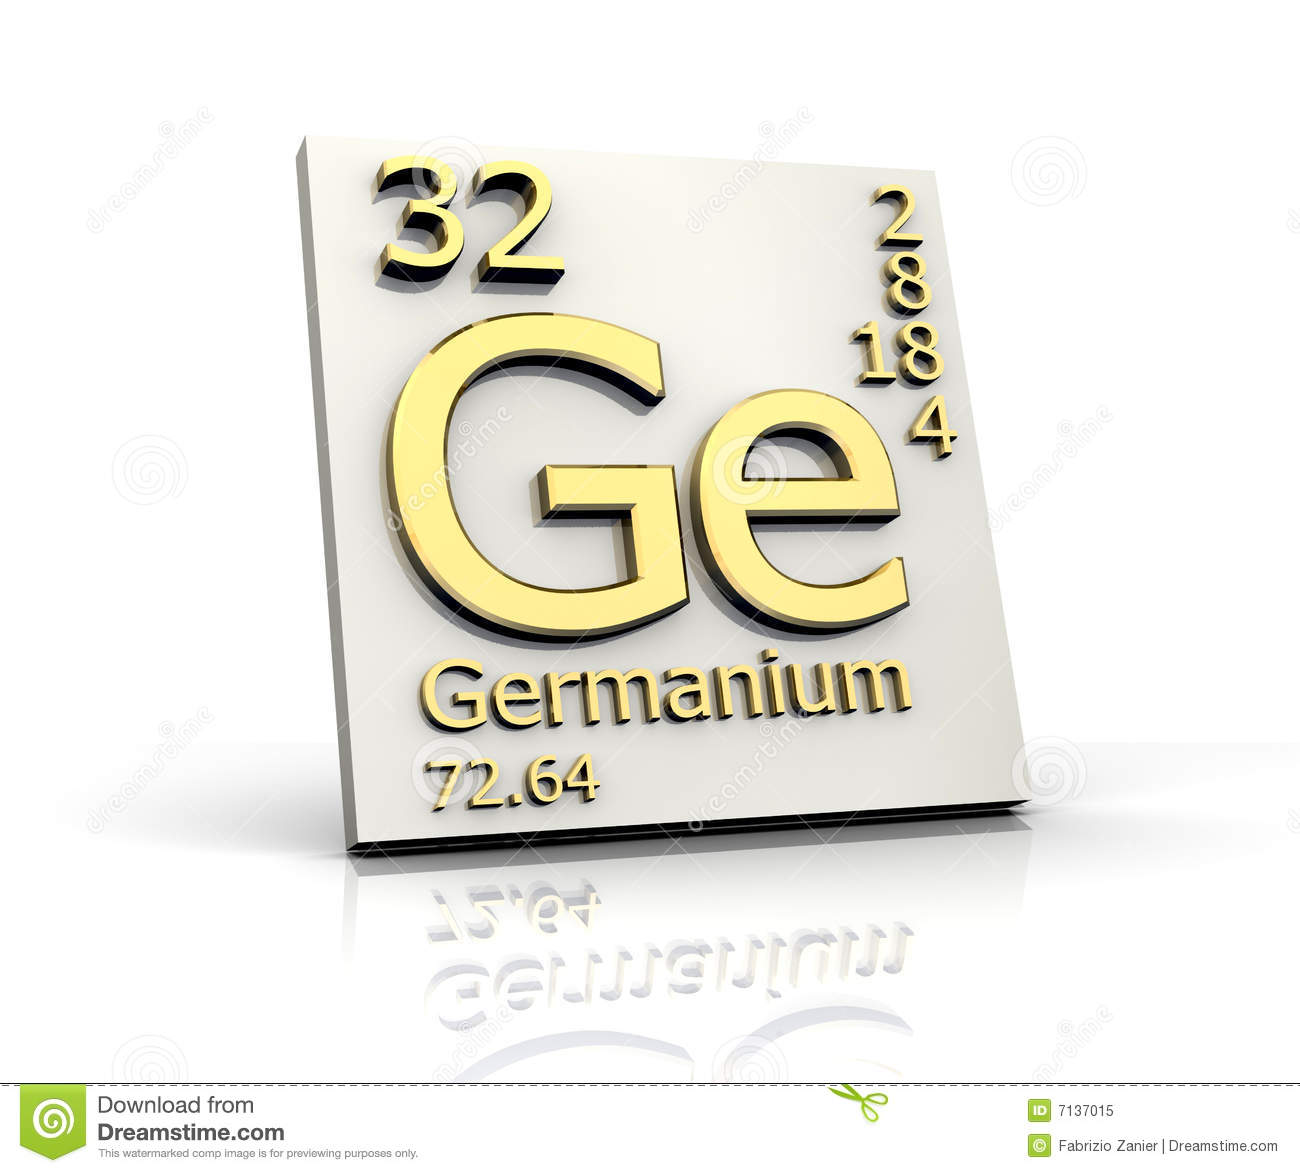 Germanium cartoons illustrations vector stock images for Table of elements 85